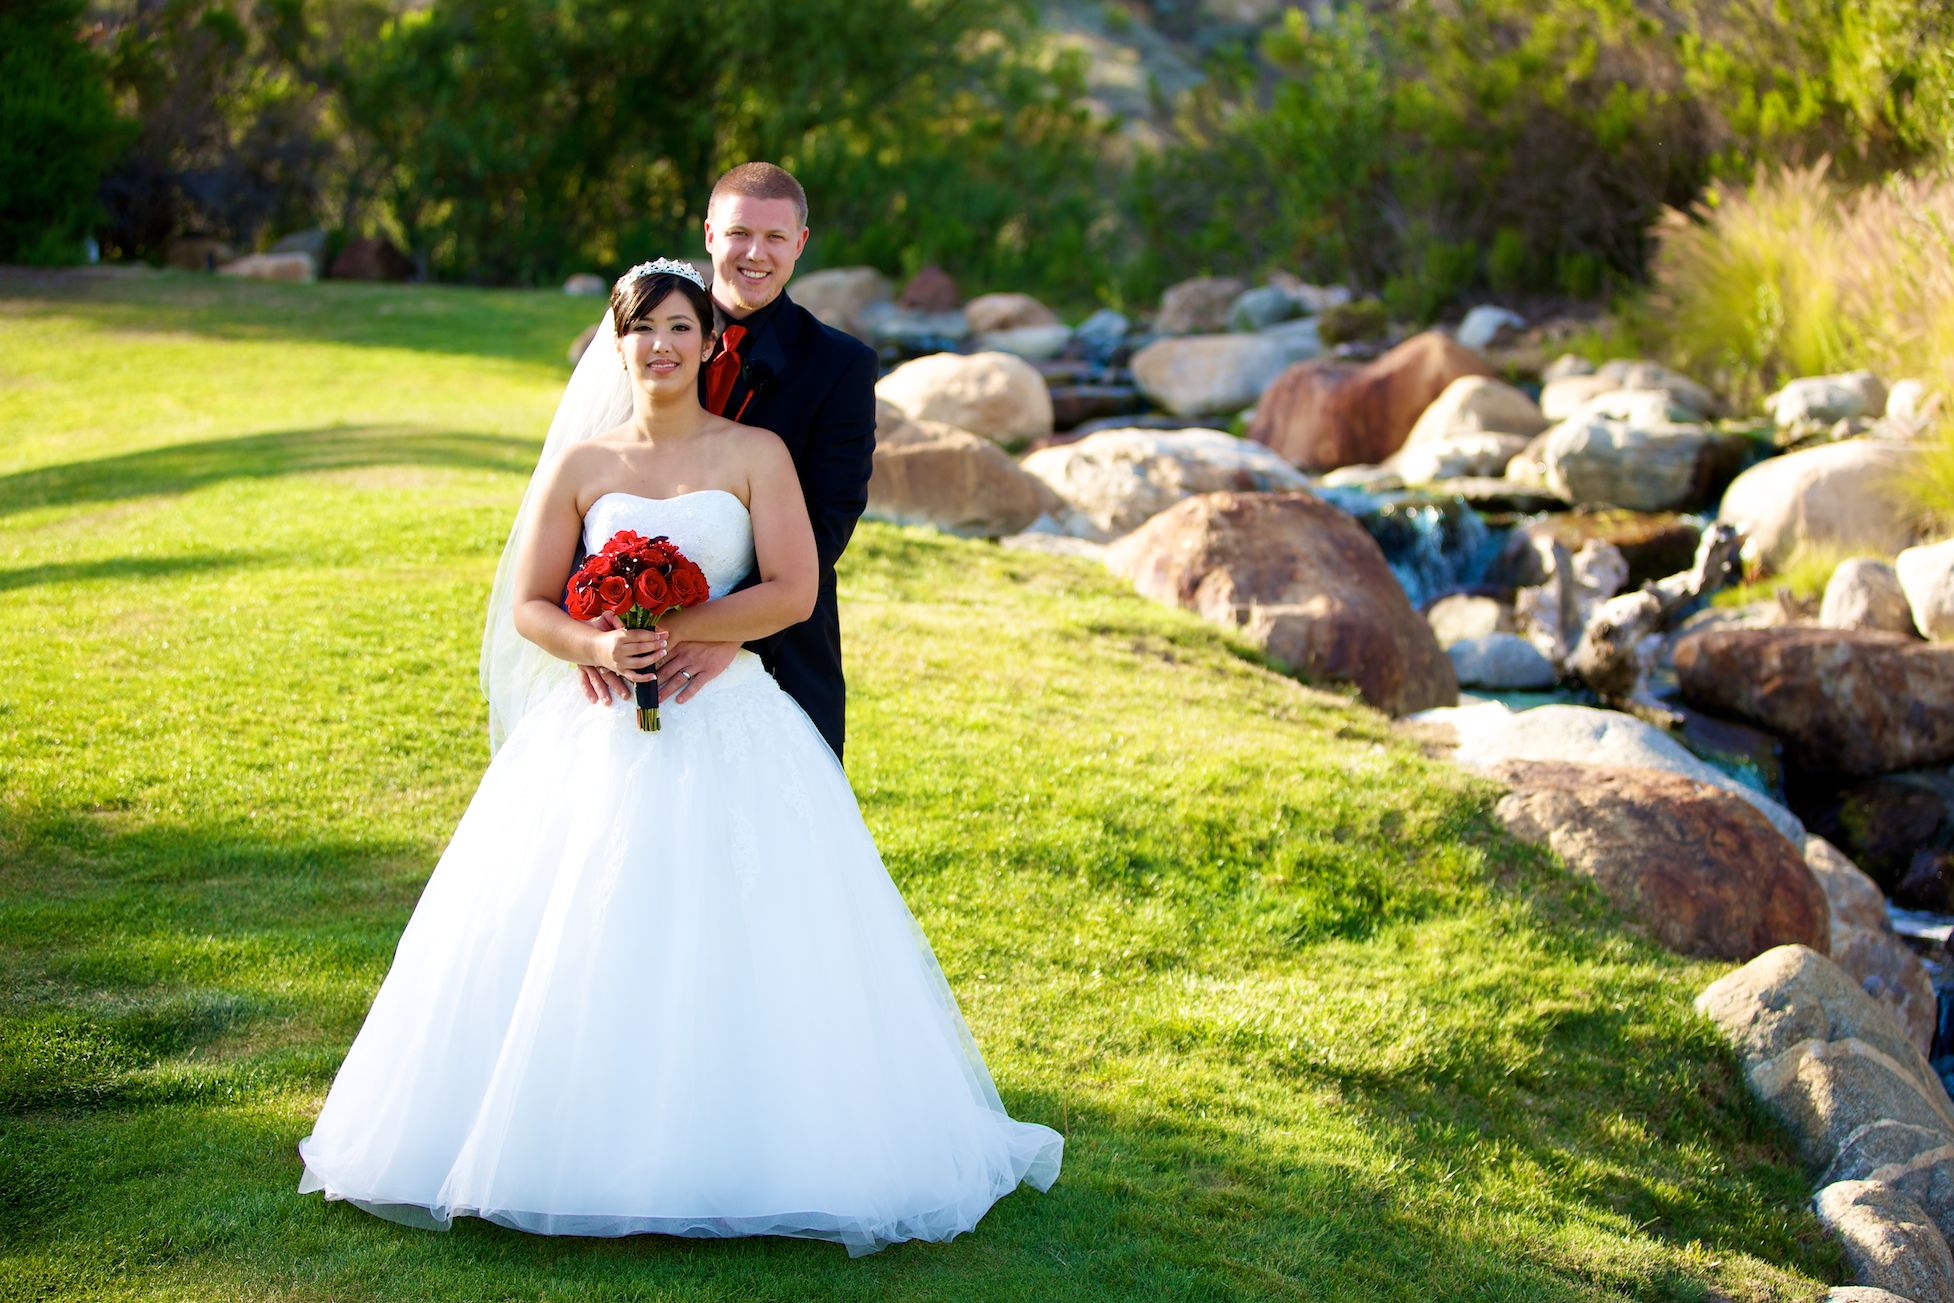 Yorba Linda Wedding on grass